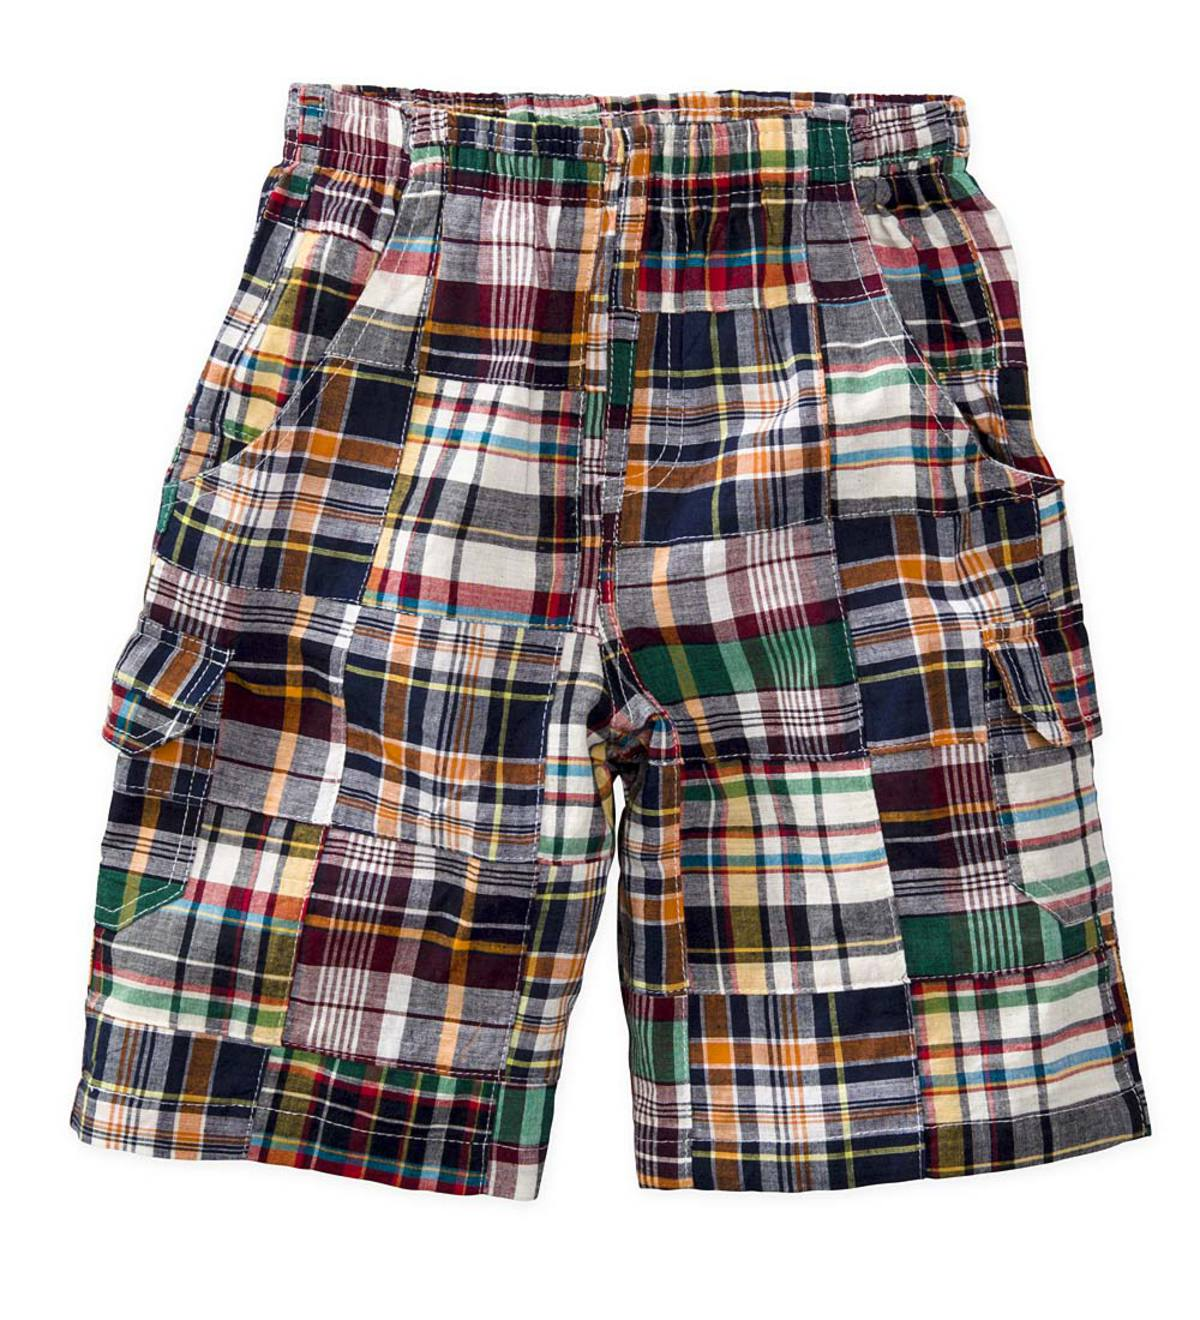 Warm Colors Plaid Cargo Shorts - Multi - 18M